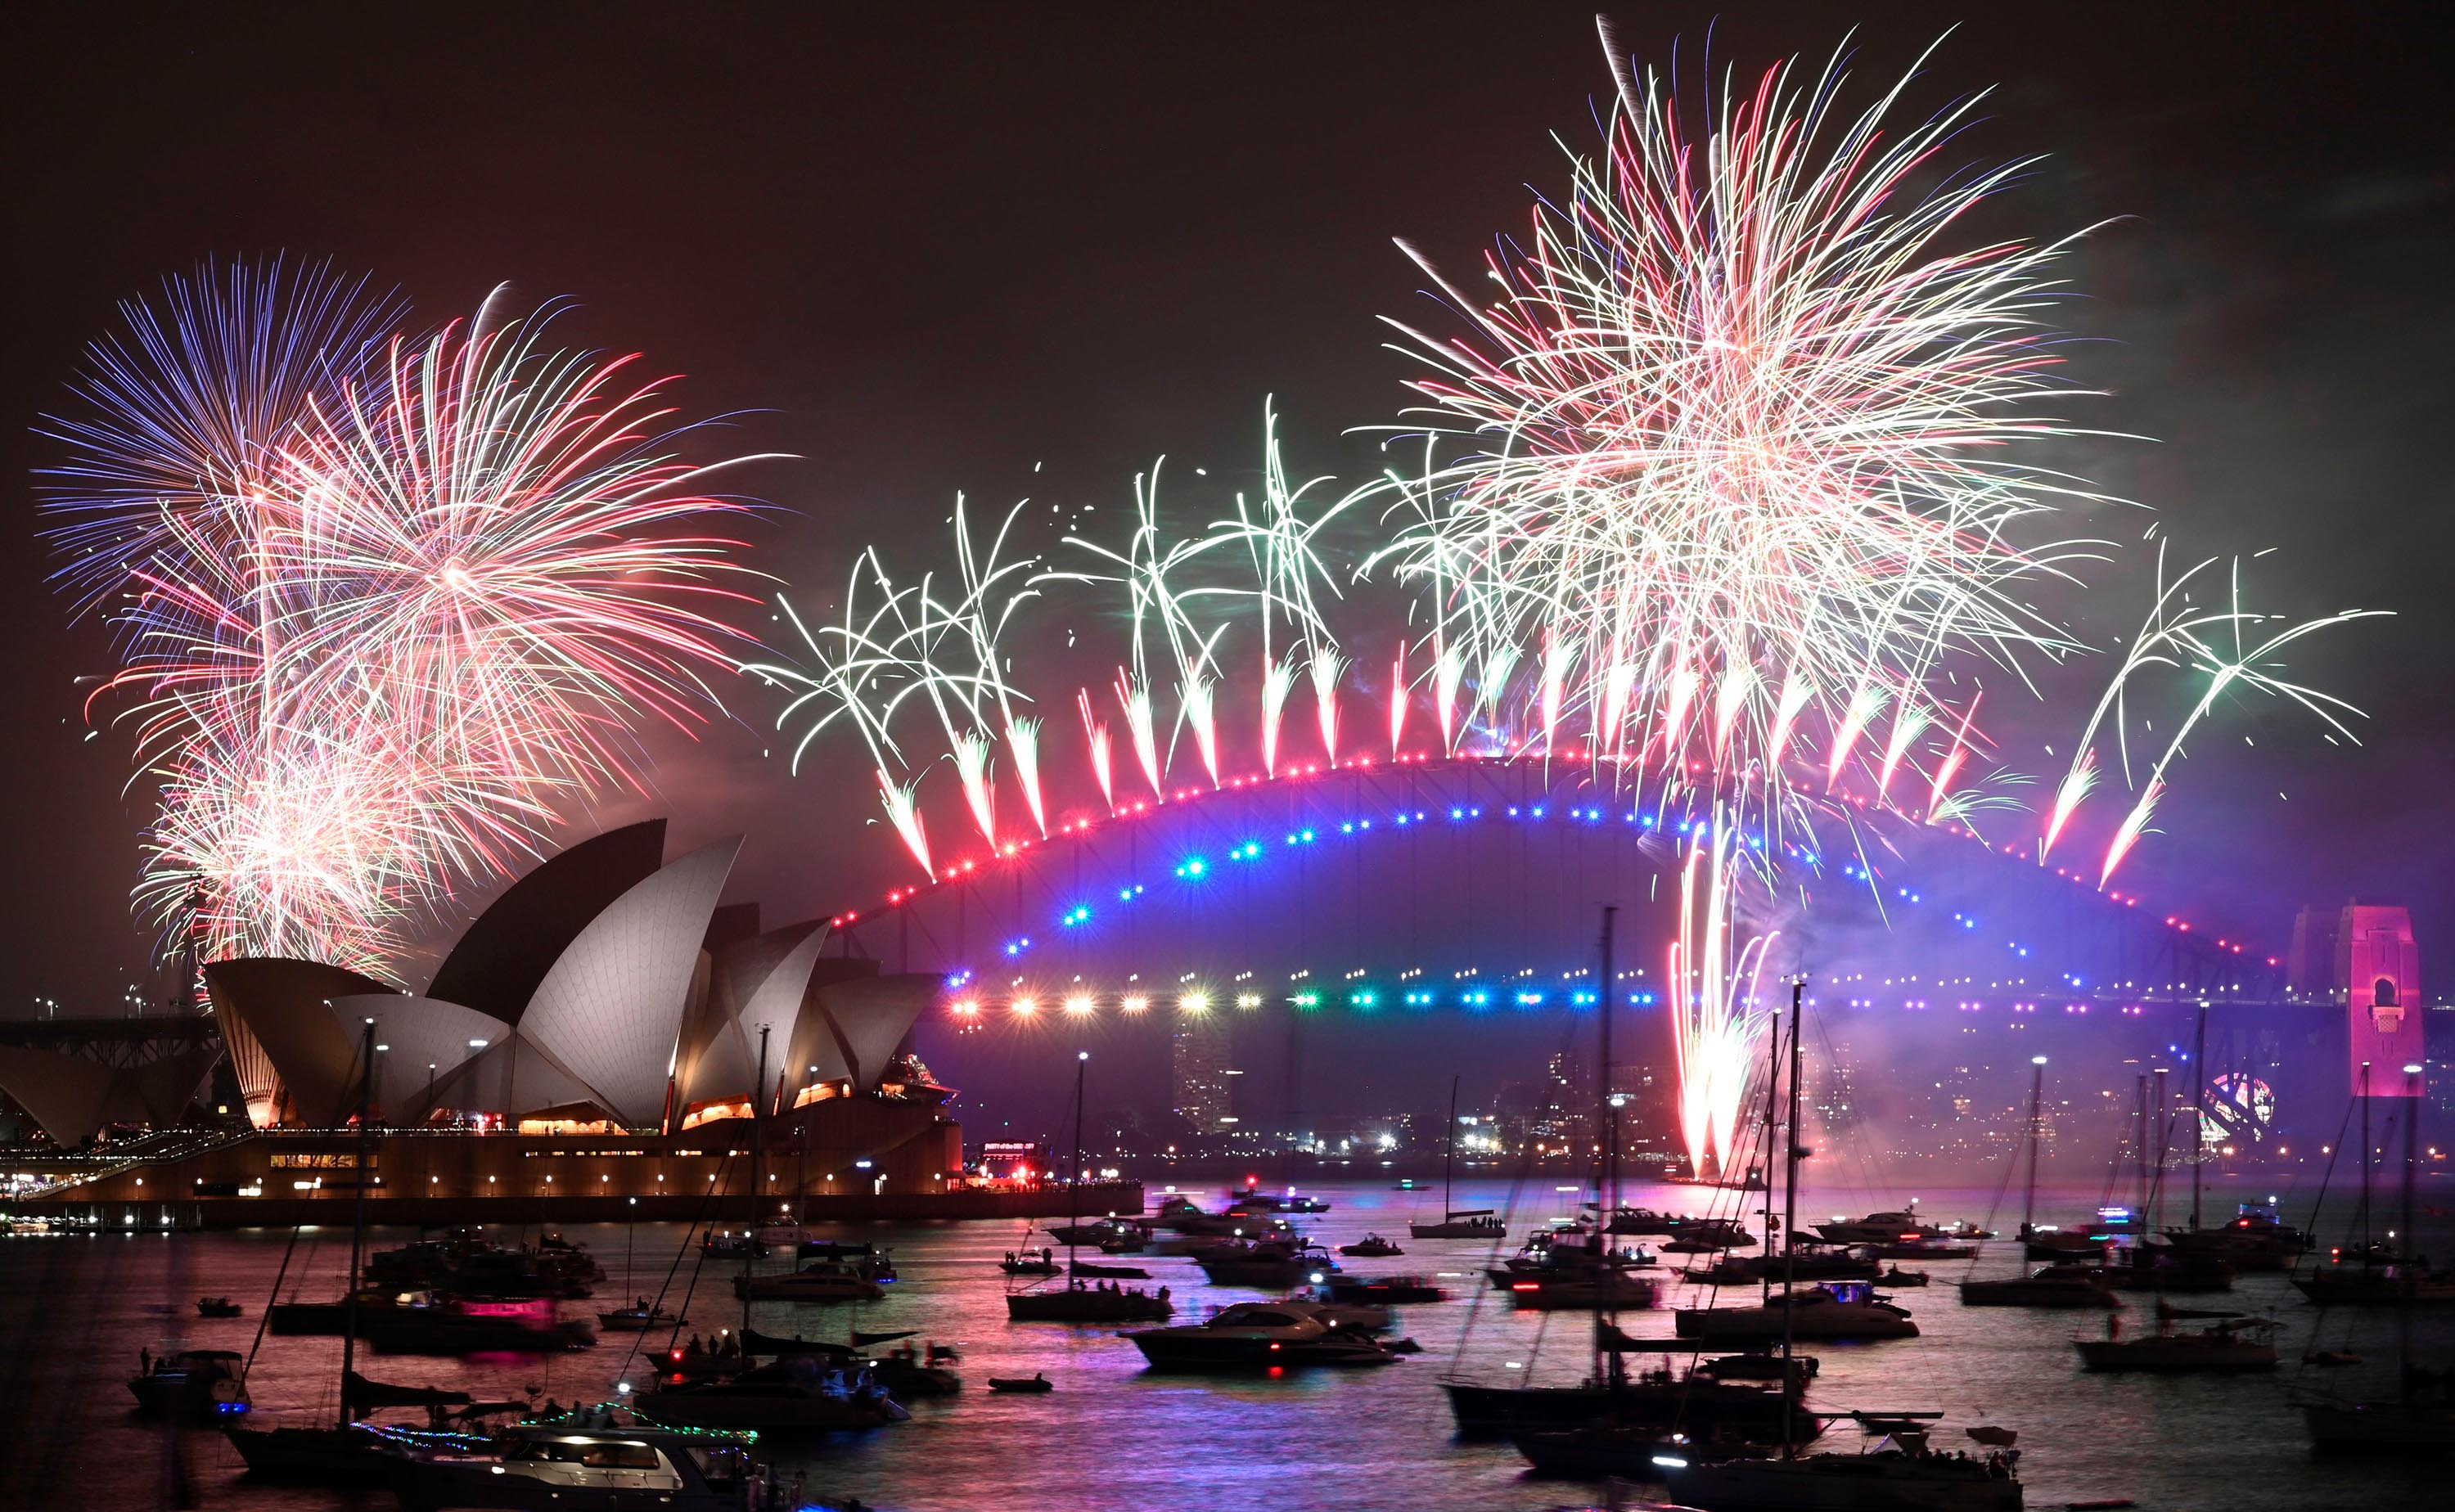 10 great places to spend New Year's Eve | CNN Travel